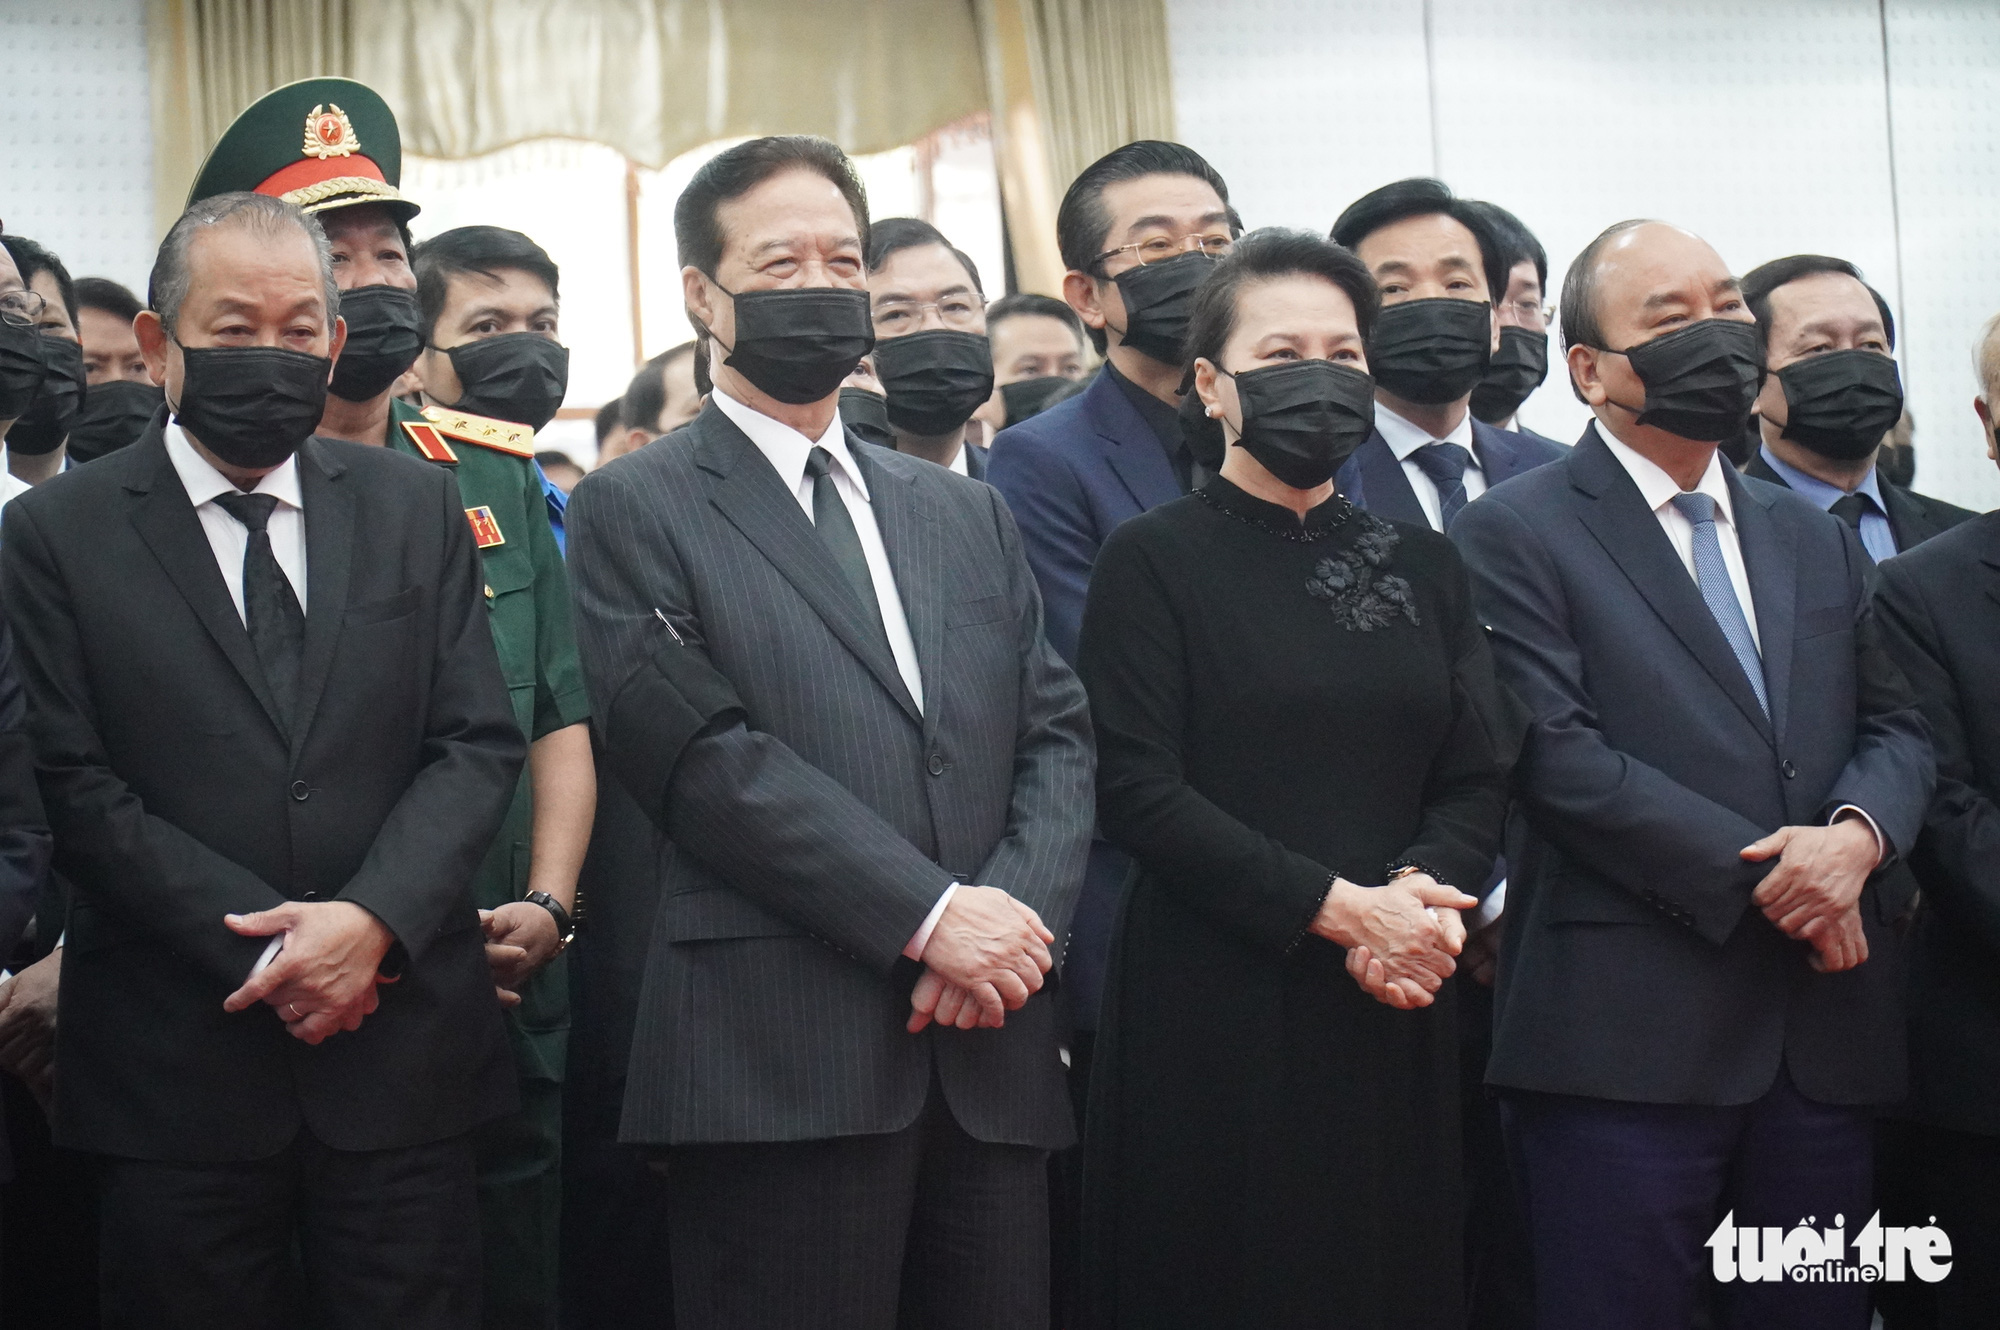 Vietnamese leaders and former leaders attend the funeral of former Deputy Prime Minister Truong Vinh Trong in Ben Tre Province, Vietnam, February 21, 2021. Photo: Tu Trung / Tuoi Tre